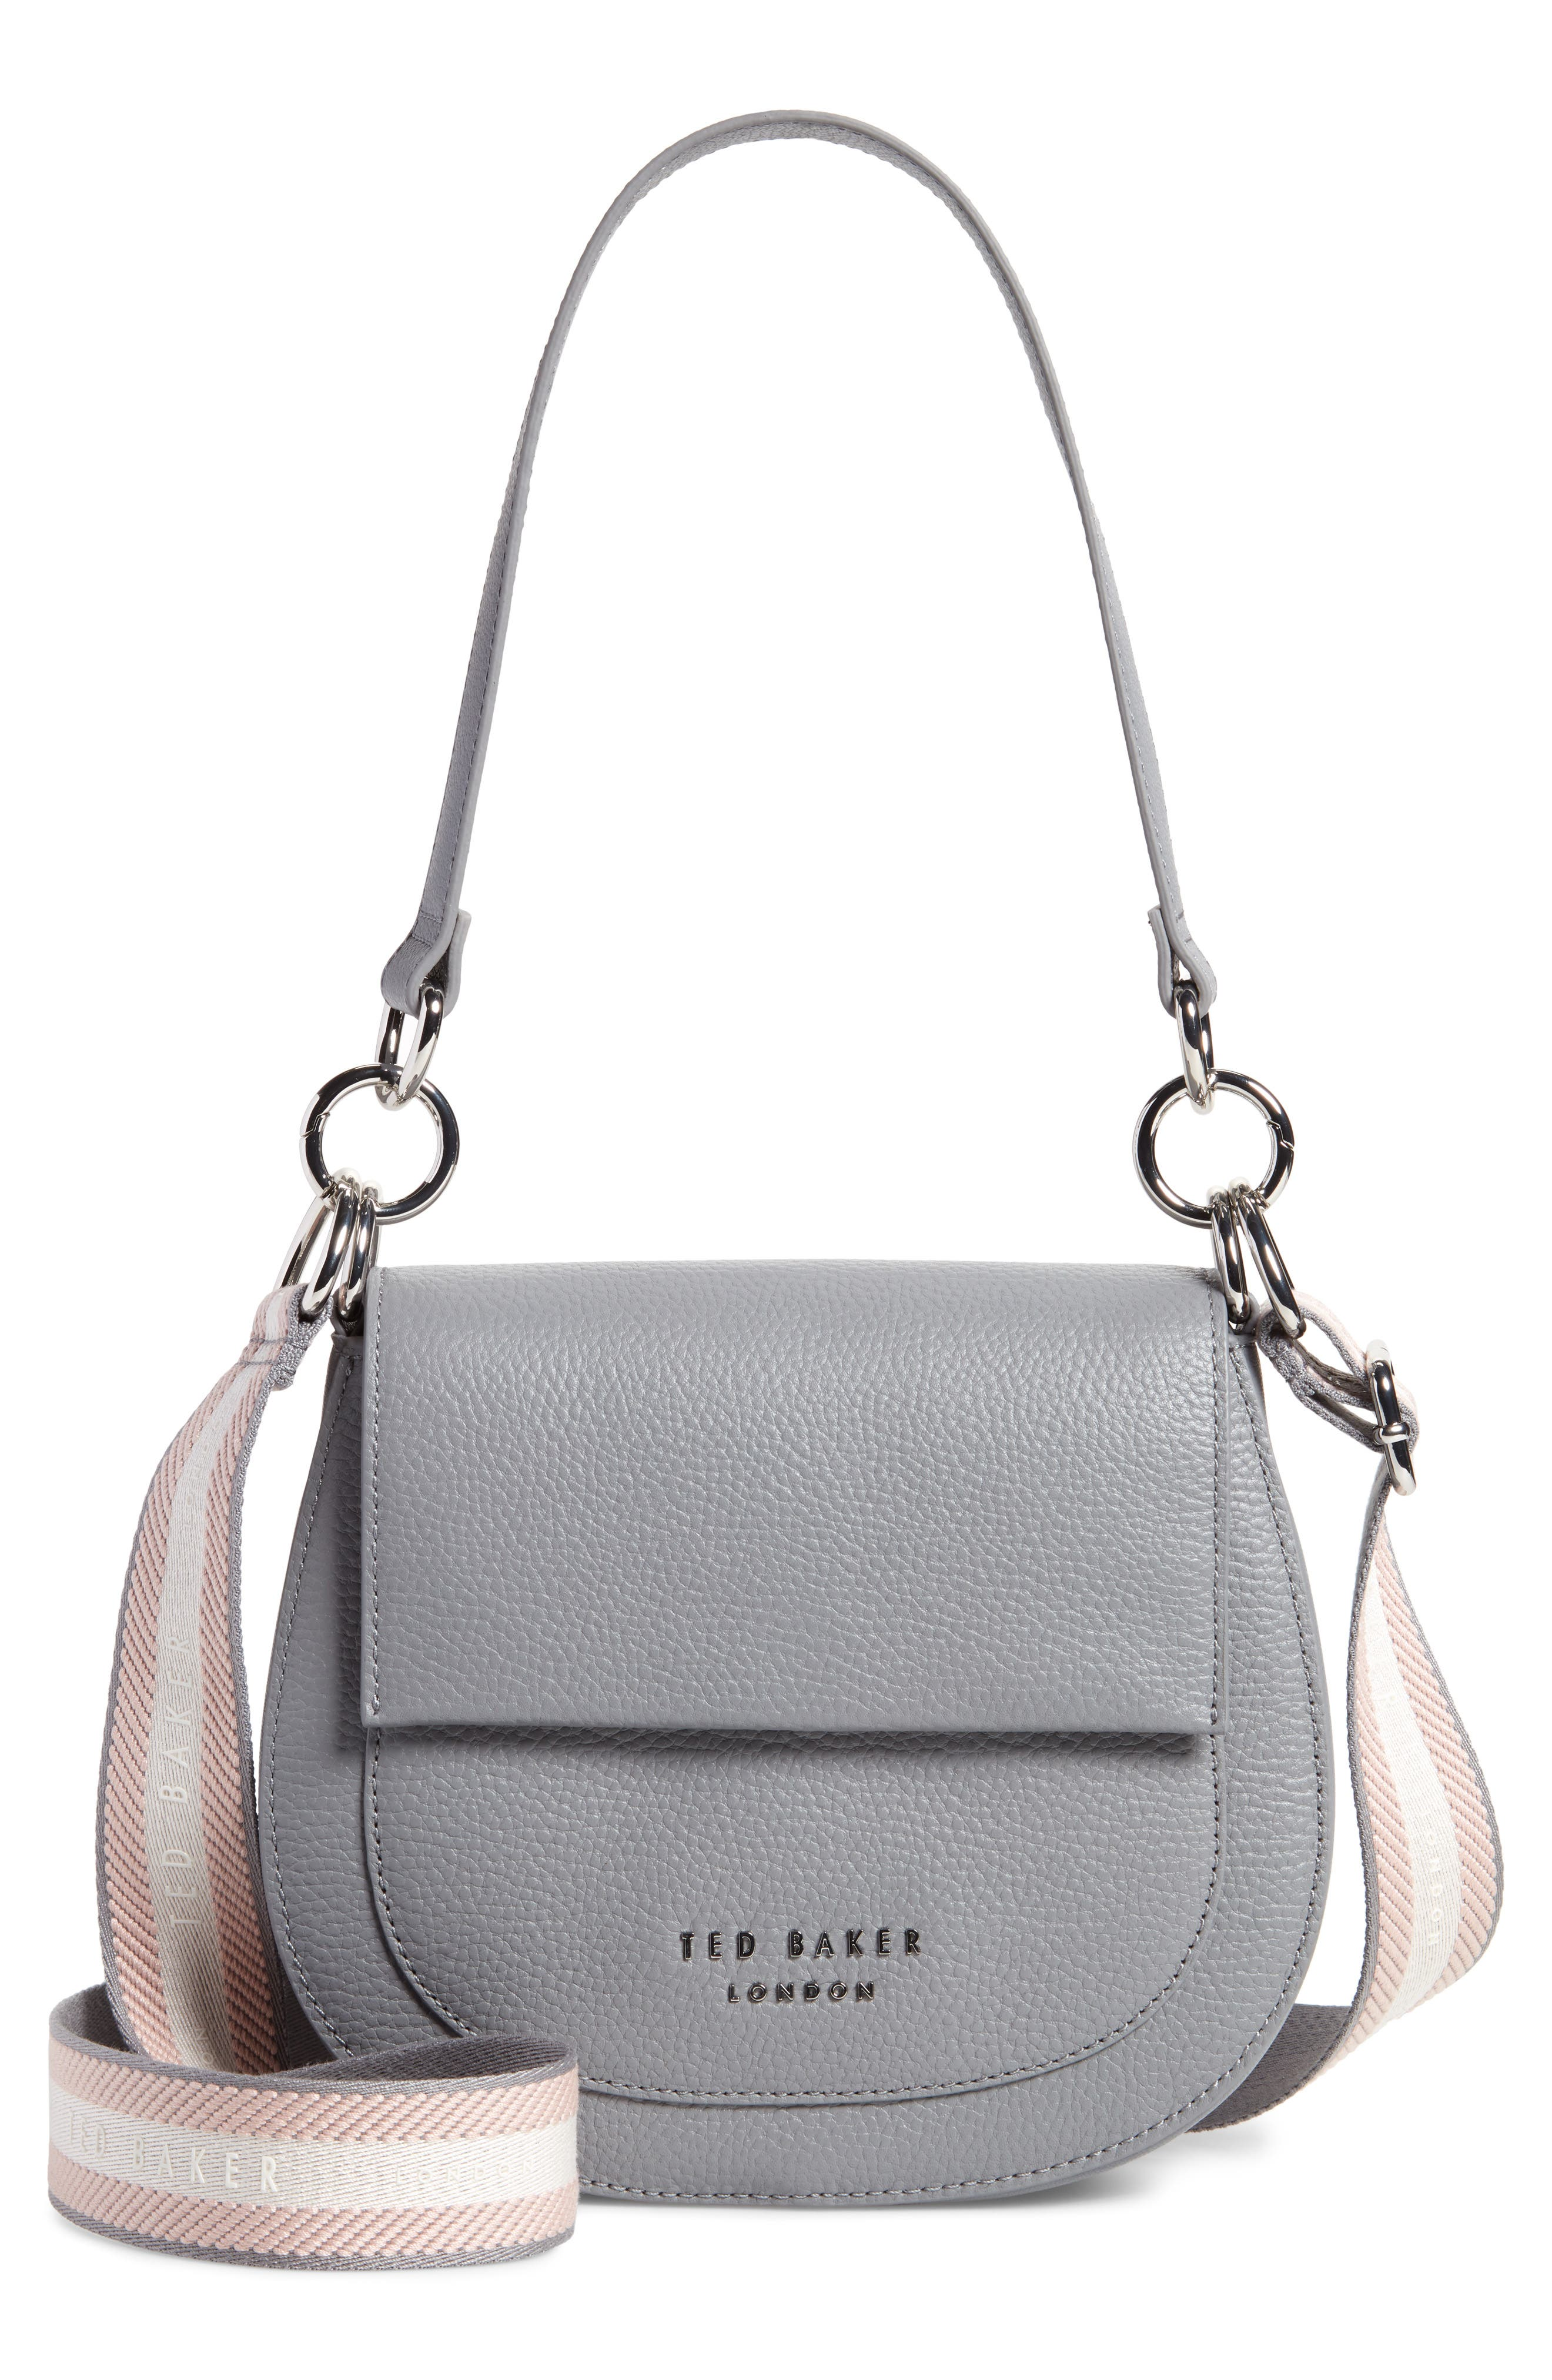 A grainy leather bag lets you mix it up thanks to its two straps, one a traditional leather shoulder strap and the other a bold webbed crossbody strap. Style Name: Ted Baker London Amali Leather Crossbody Bag. Style Number: 5997262. Available in stores.